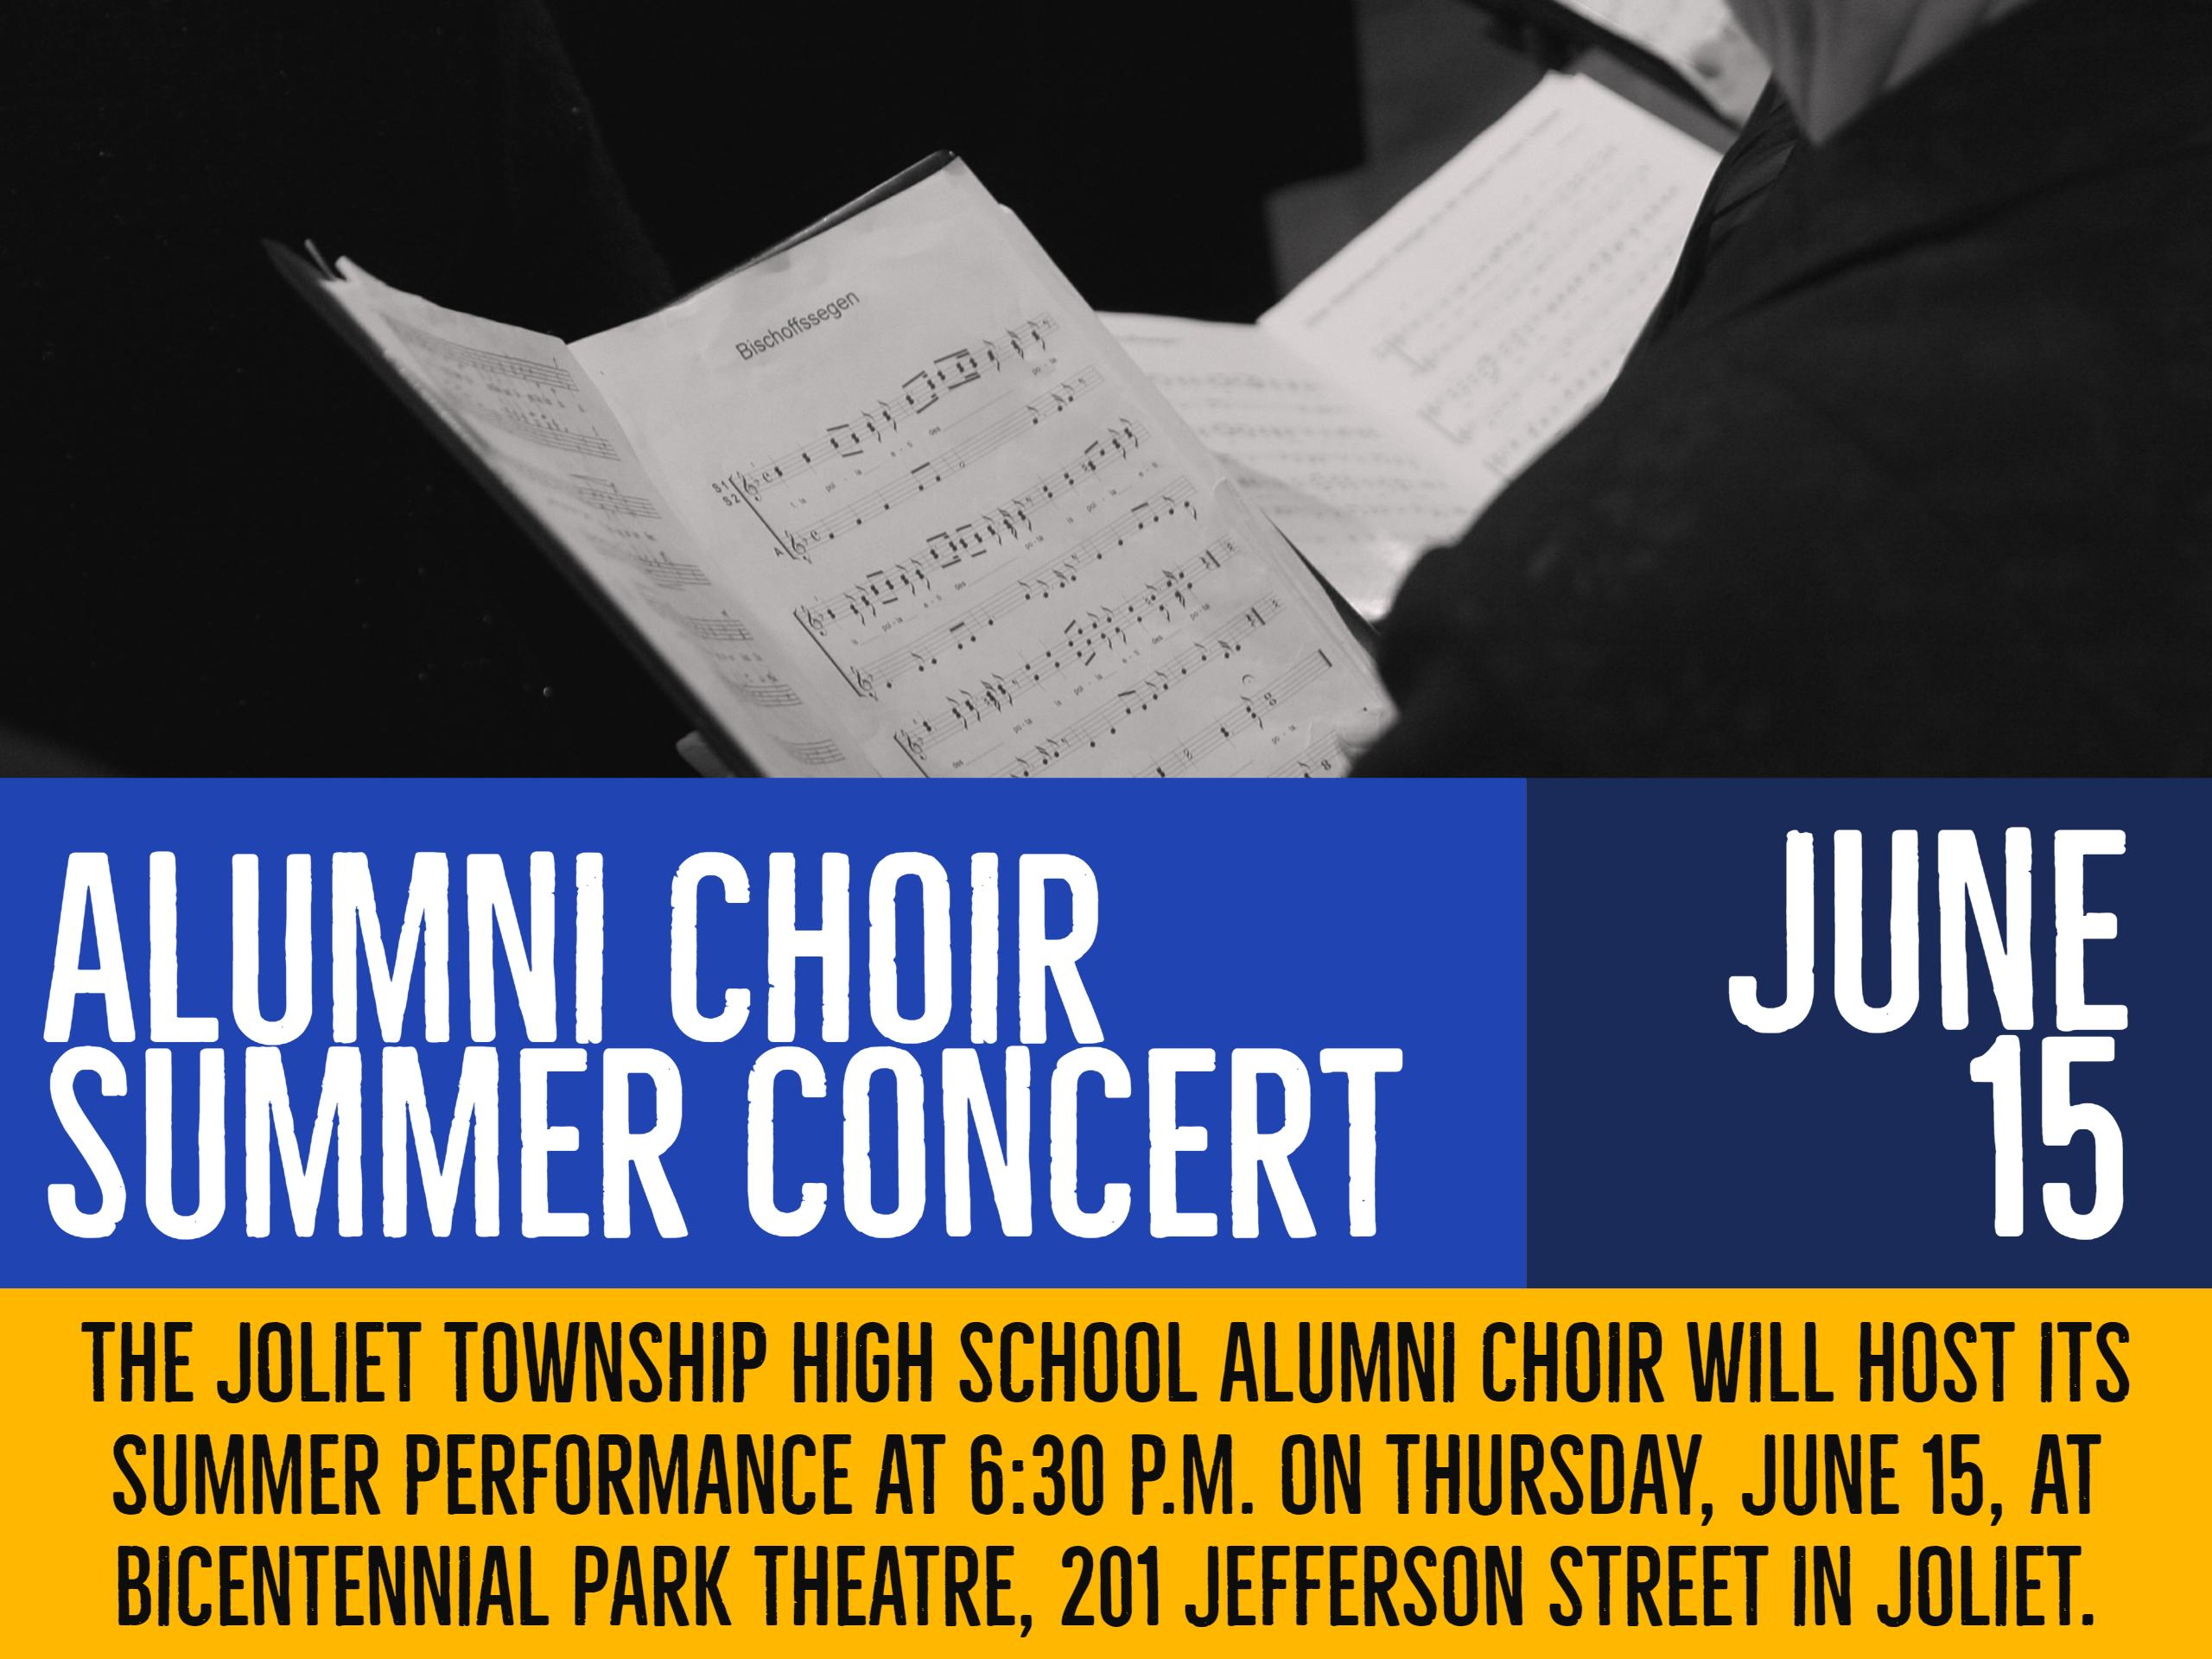 Alumni_Choir_June_15.jpg